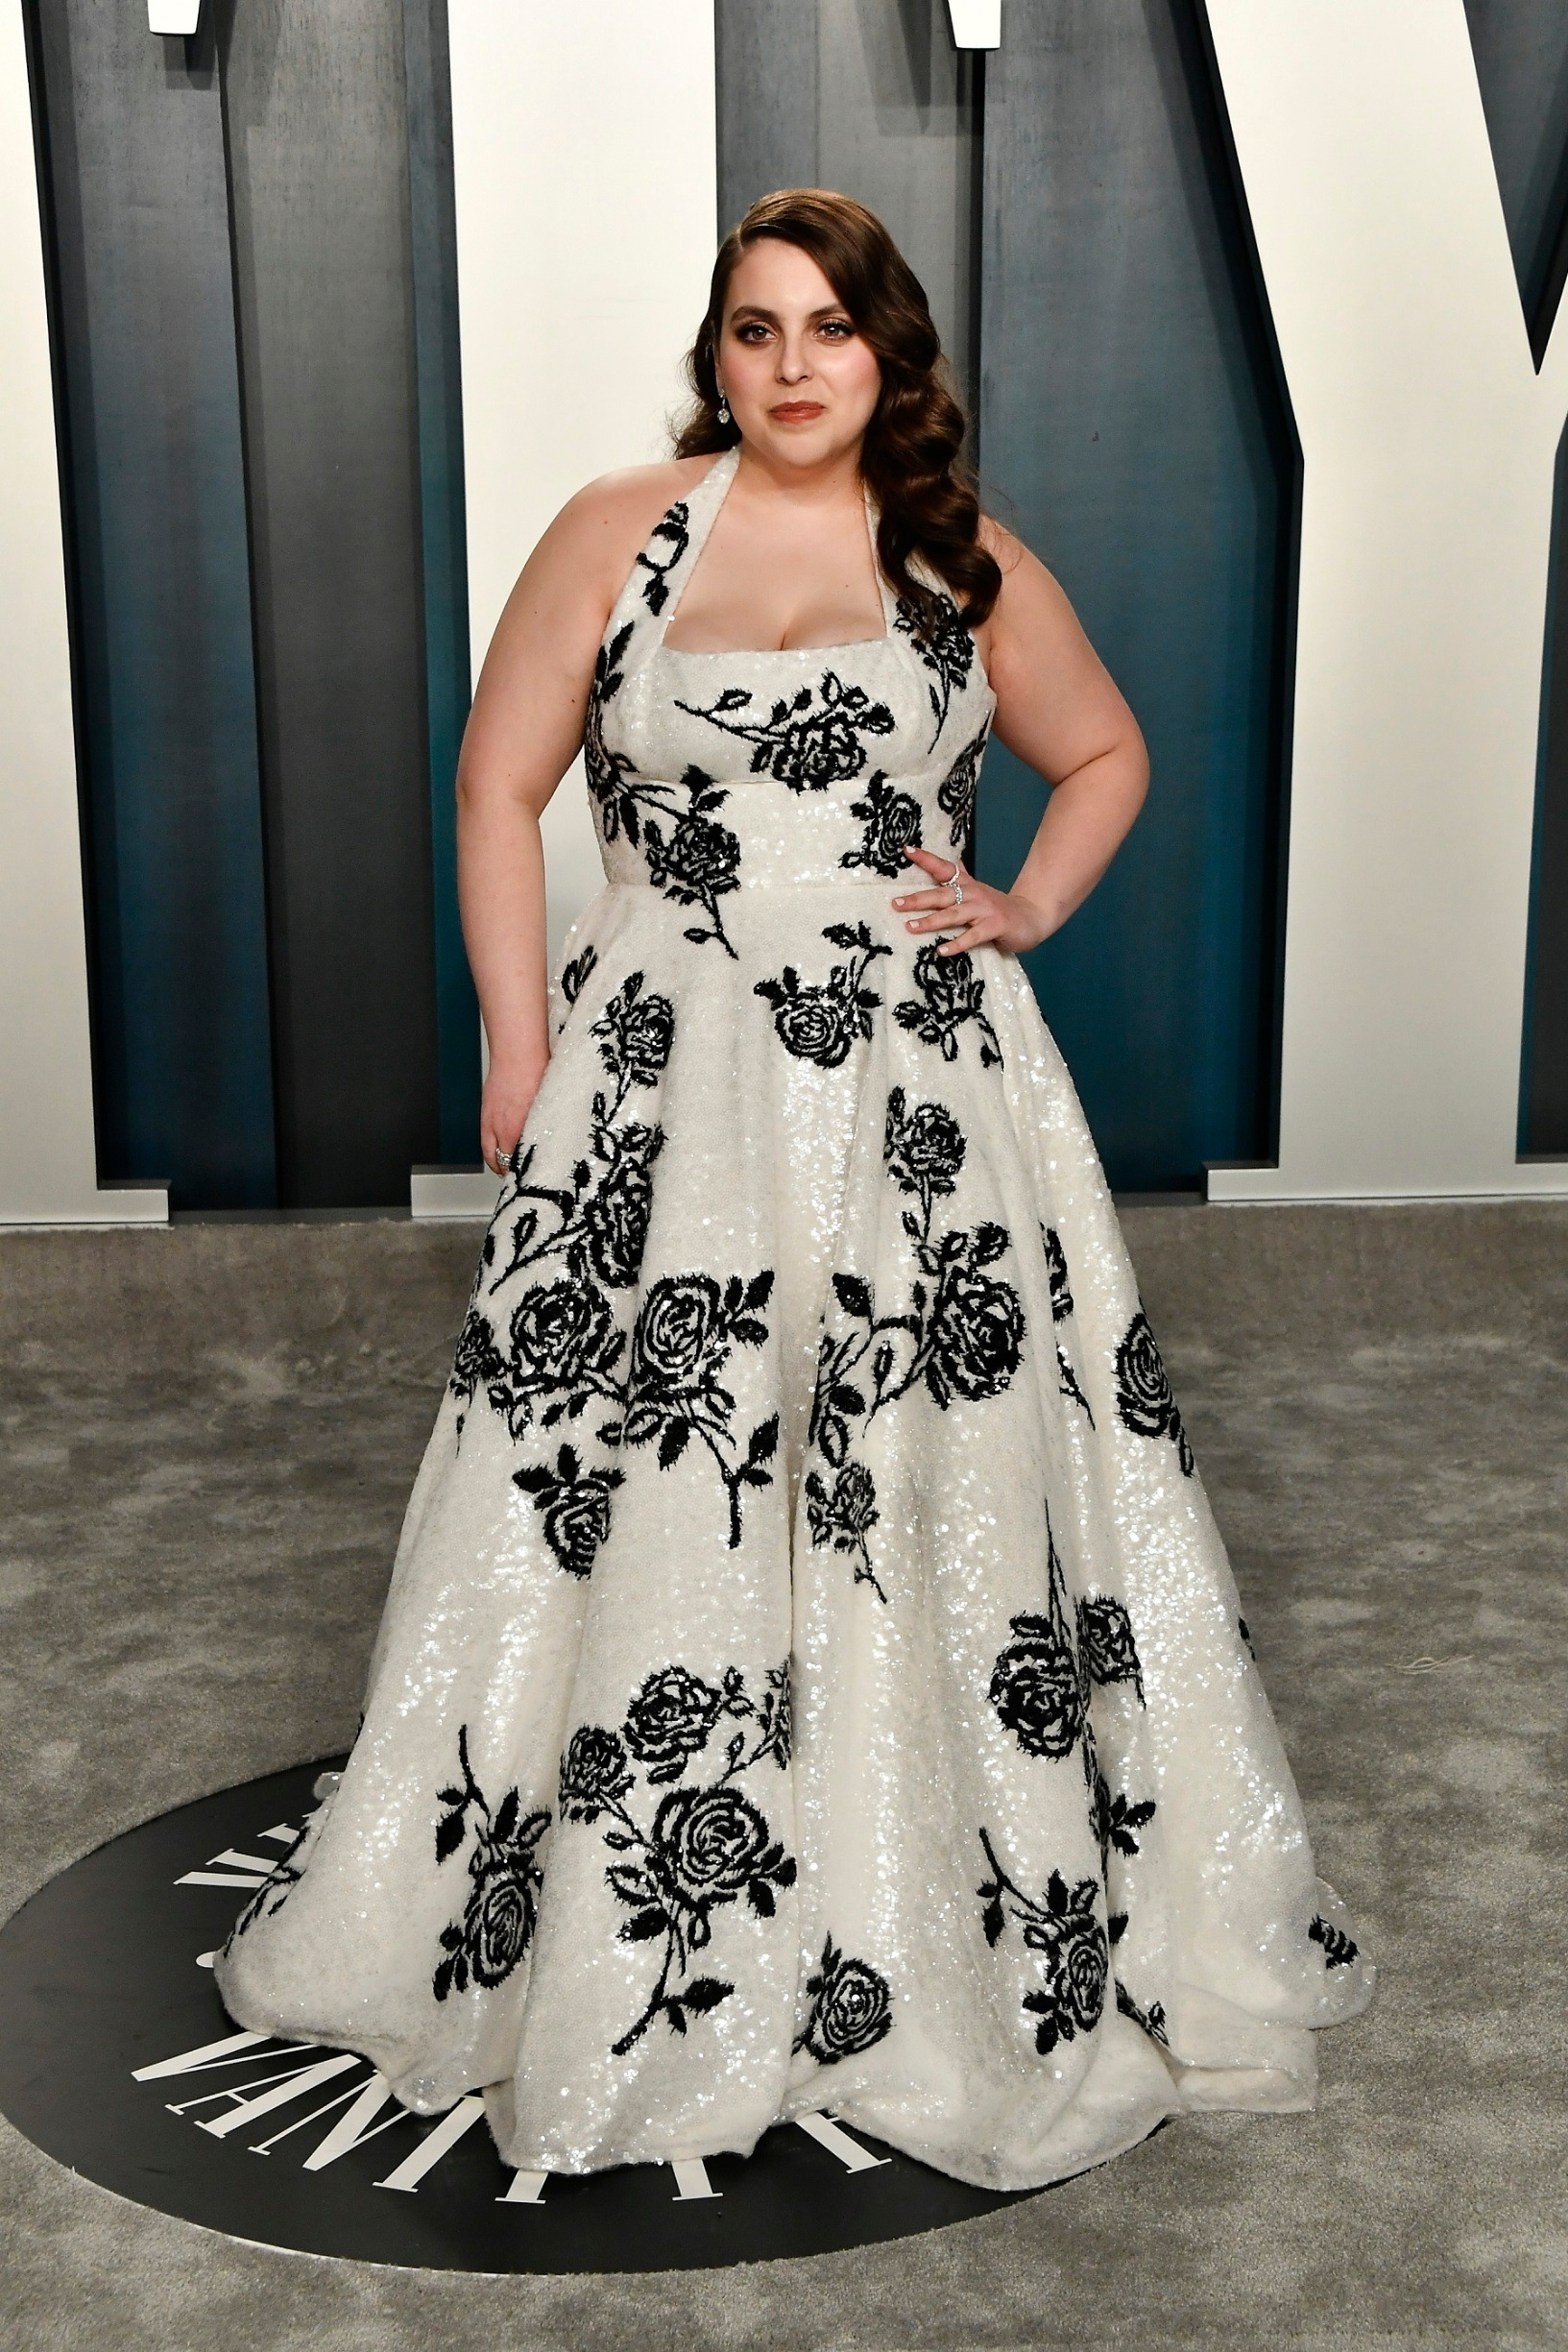 BEVERLY HILLS, CALIFORNIA - FEBRUARY 09: Beanie Feldstein  attends the 2020 Vanity Fair Oscar Party hosted by Radhika Jones at Wallis Annenberg Center for the Performing Arts on February 09, 2020 in Beverly Hills, California. (Photo by Frazer Harrison/Getty Images)